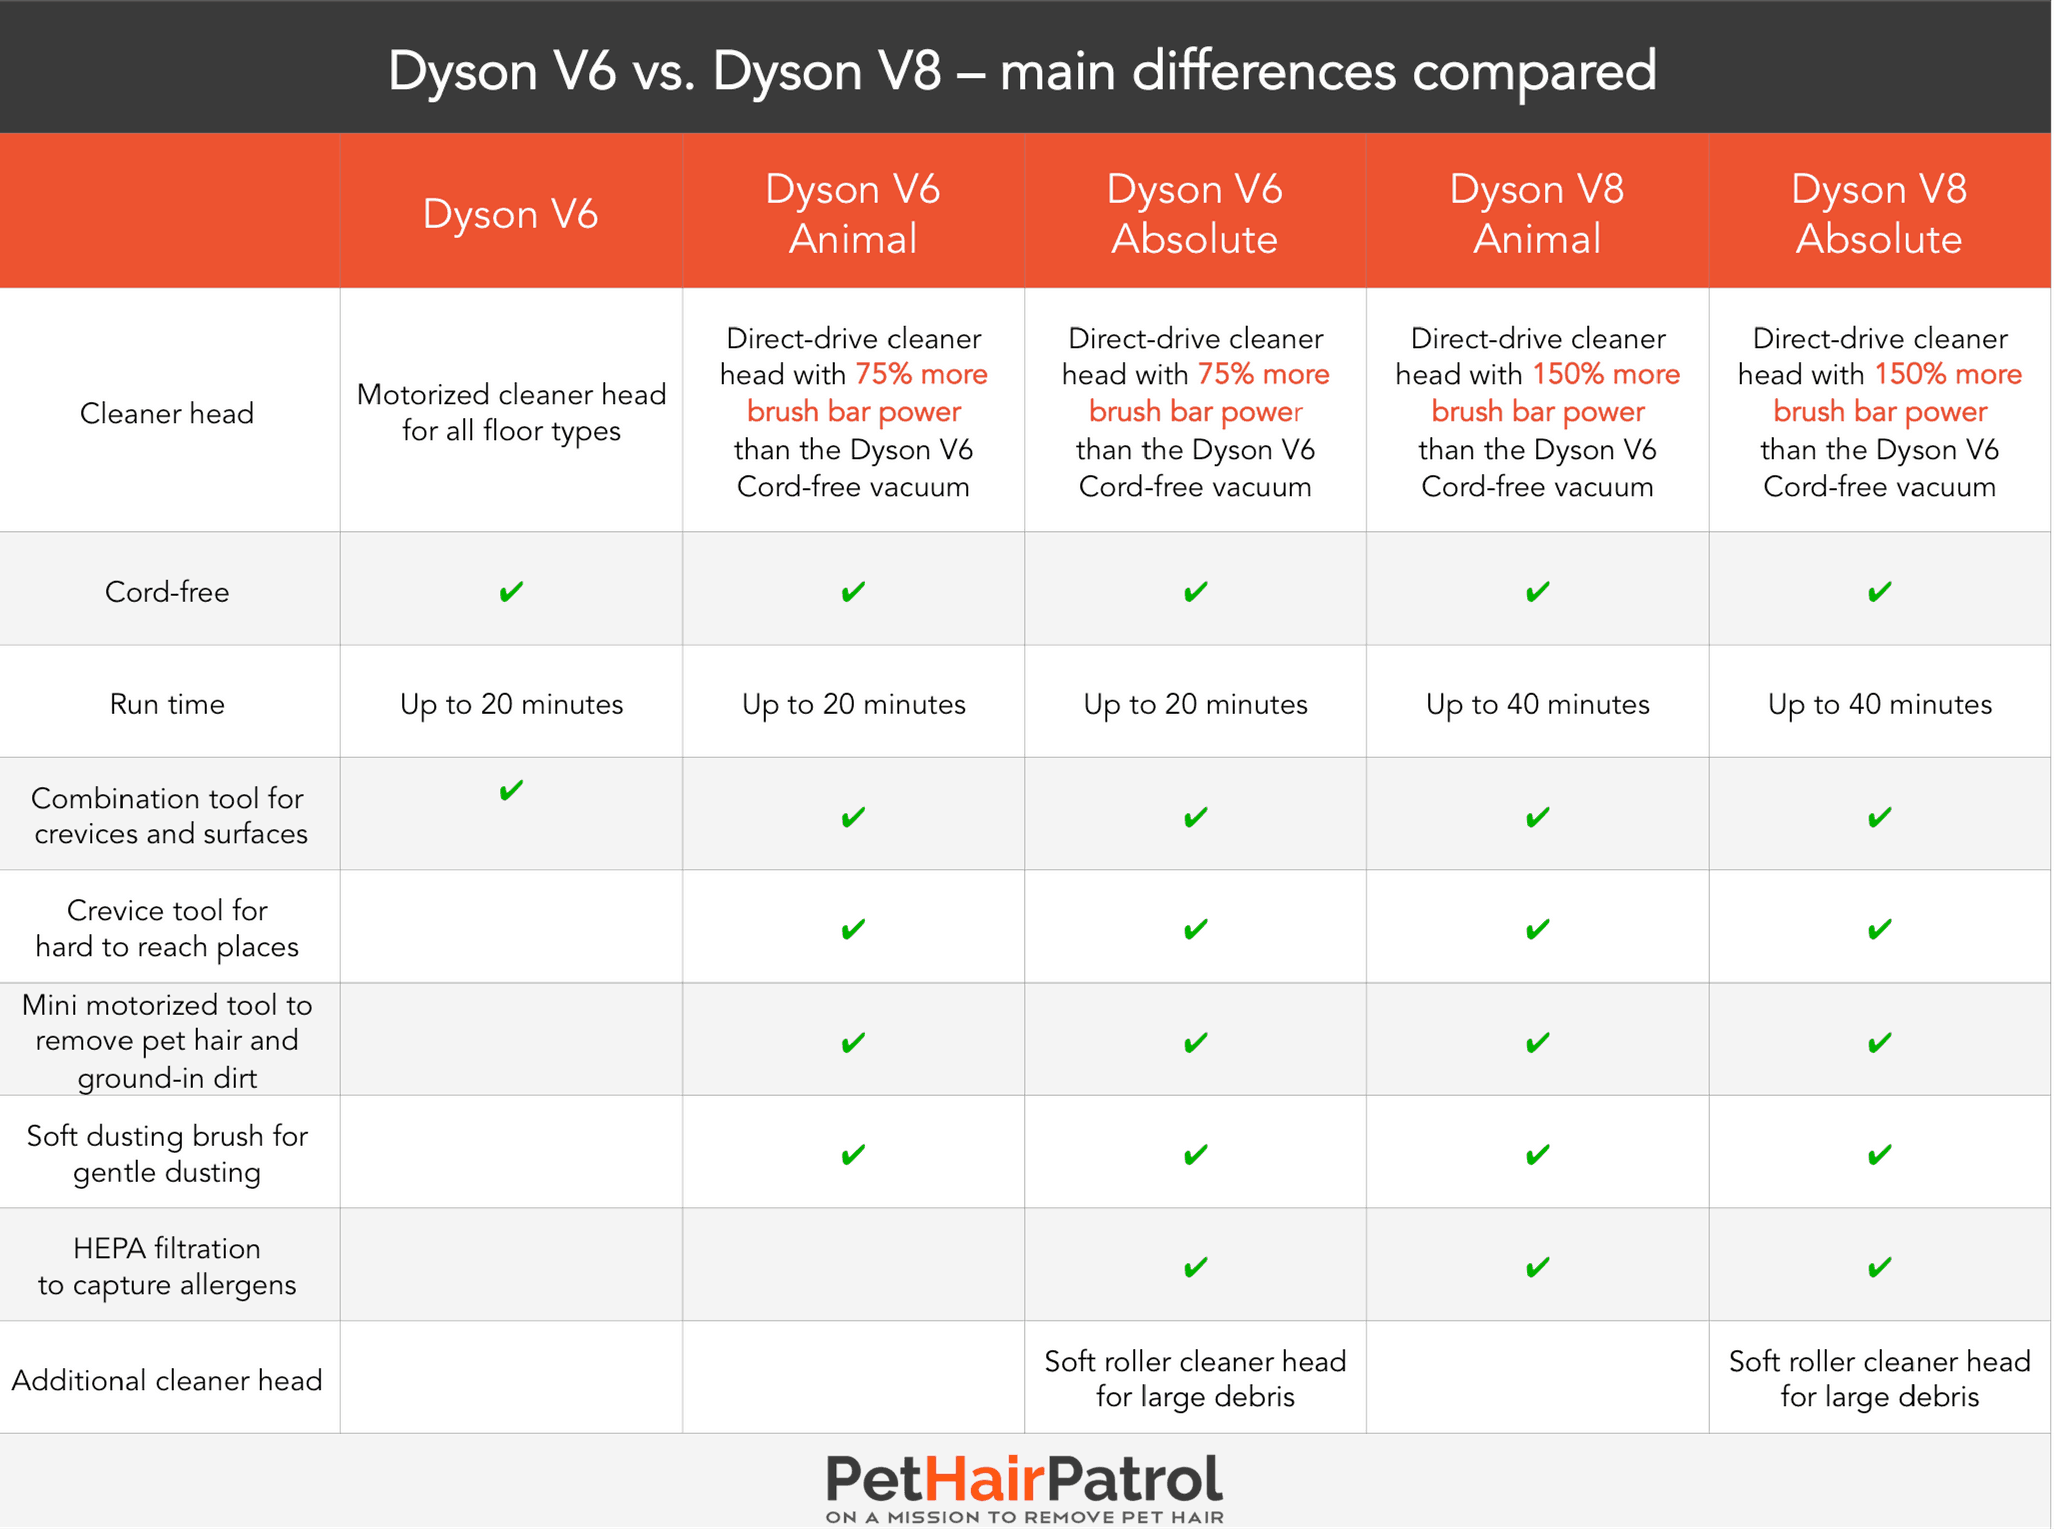 Image of: Impressed Dyson V6 Dyson V8 Comparison Pethairpatrol Dyson V8 Absolute And Dyson V6 Animal Or Absolute Review And